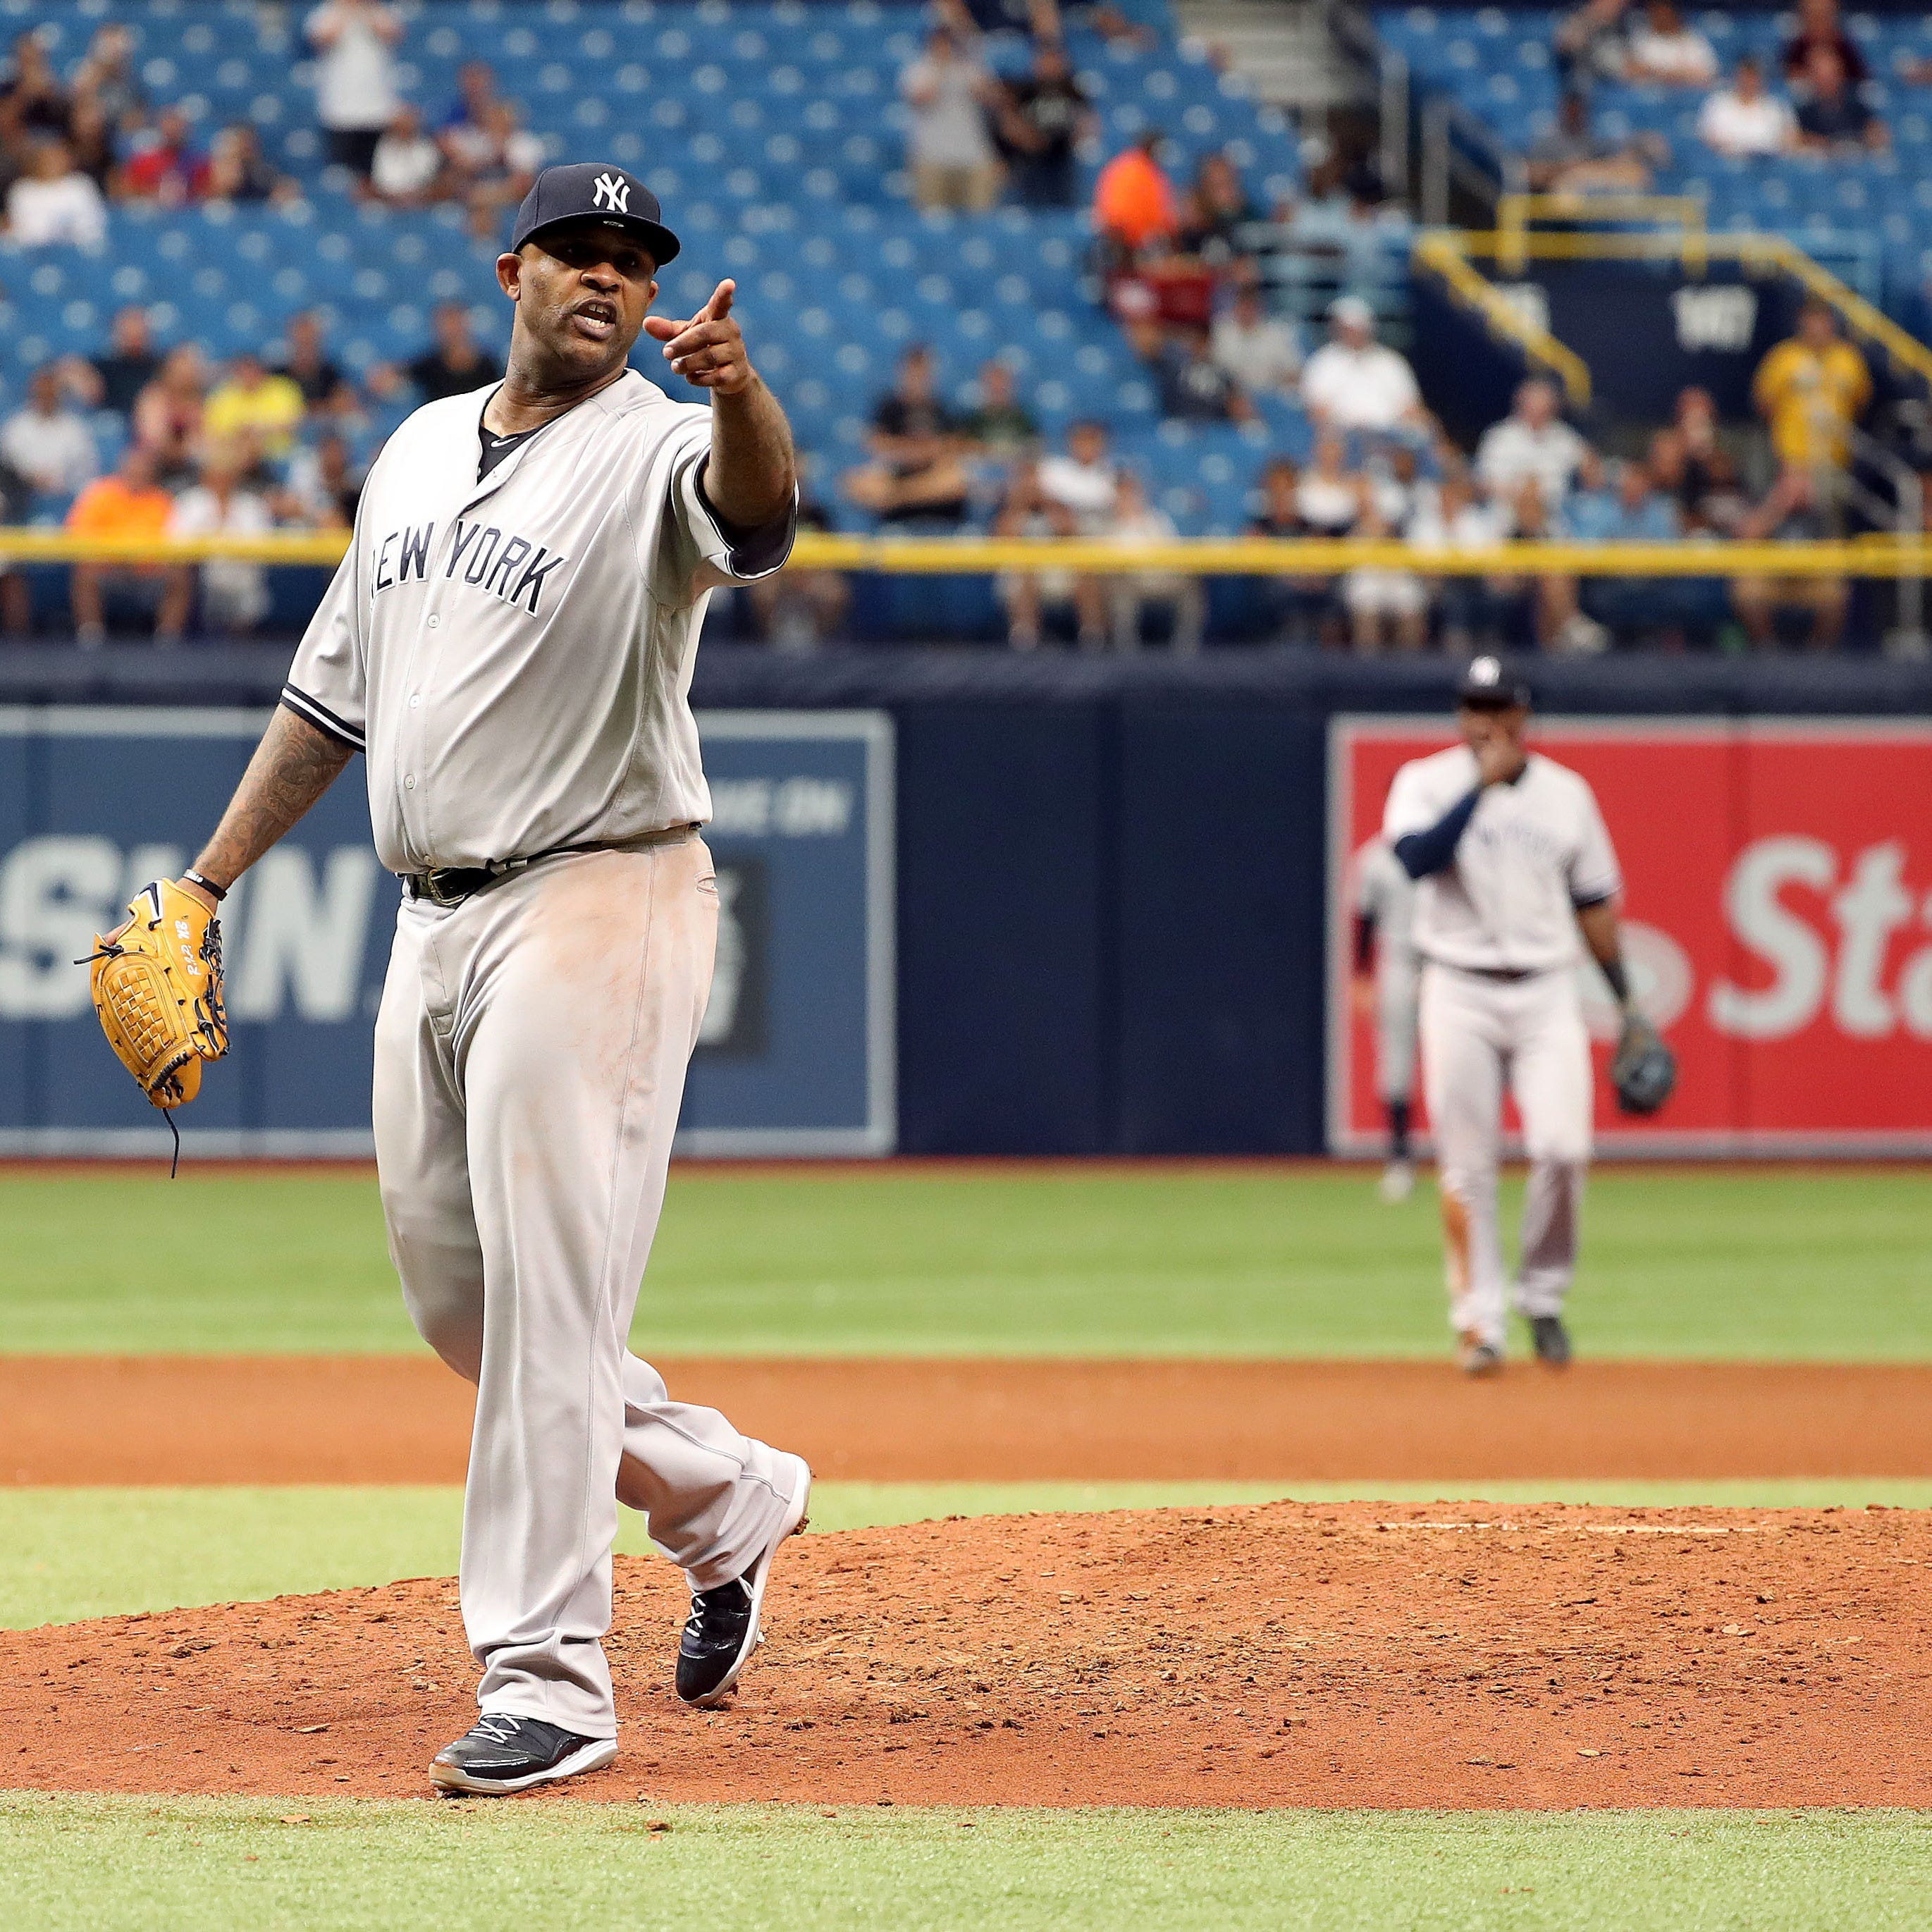 Yankees' CC Sabathia given $500,000 bonus despite September ejection